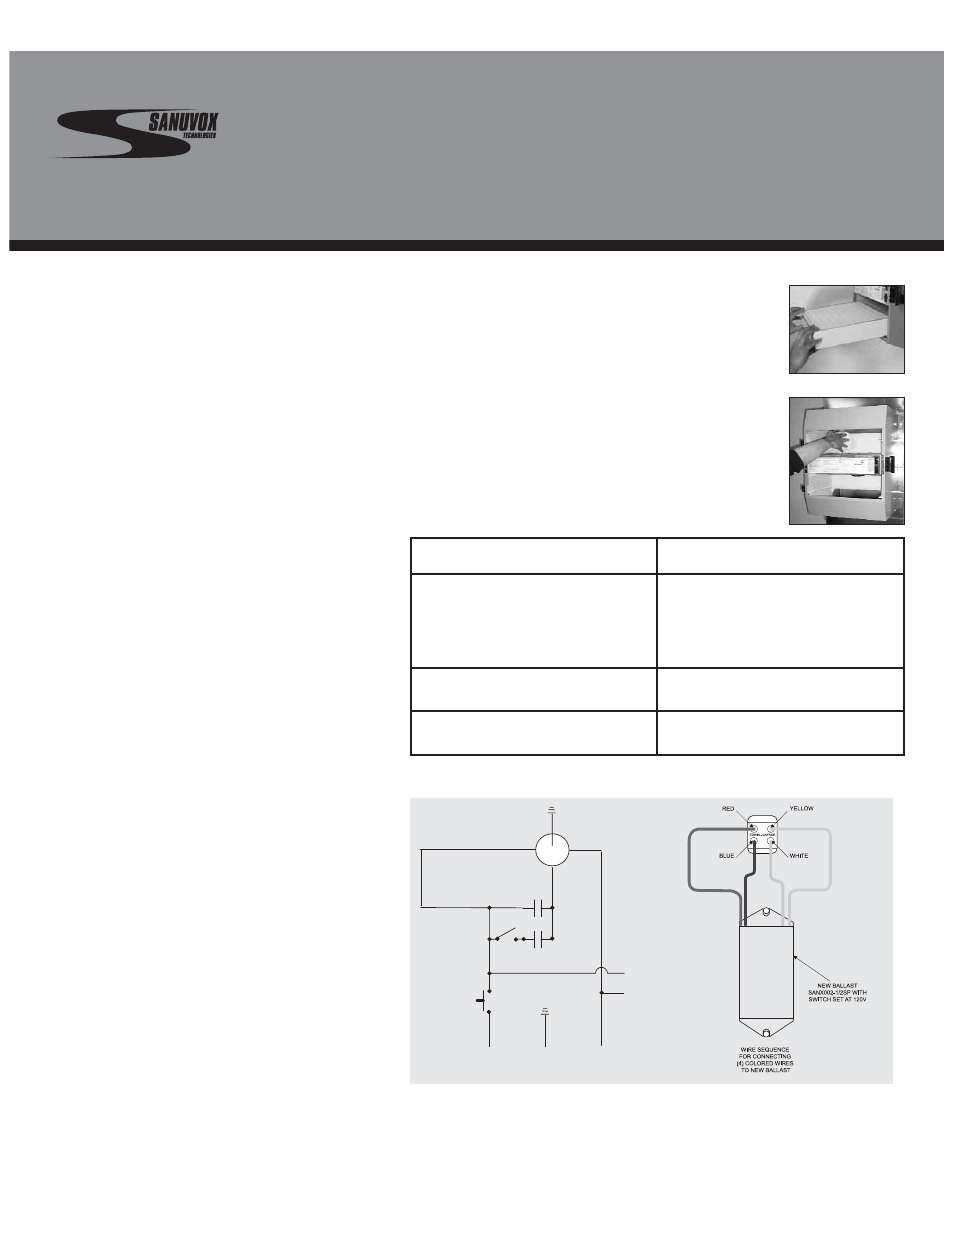 maintenance guide, general maintenance information, 1 changing wiring a 400 amp service maintenance guide, general maintenance information, 1 changing filters sanuvox s300 fx gx user manual page 12 16